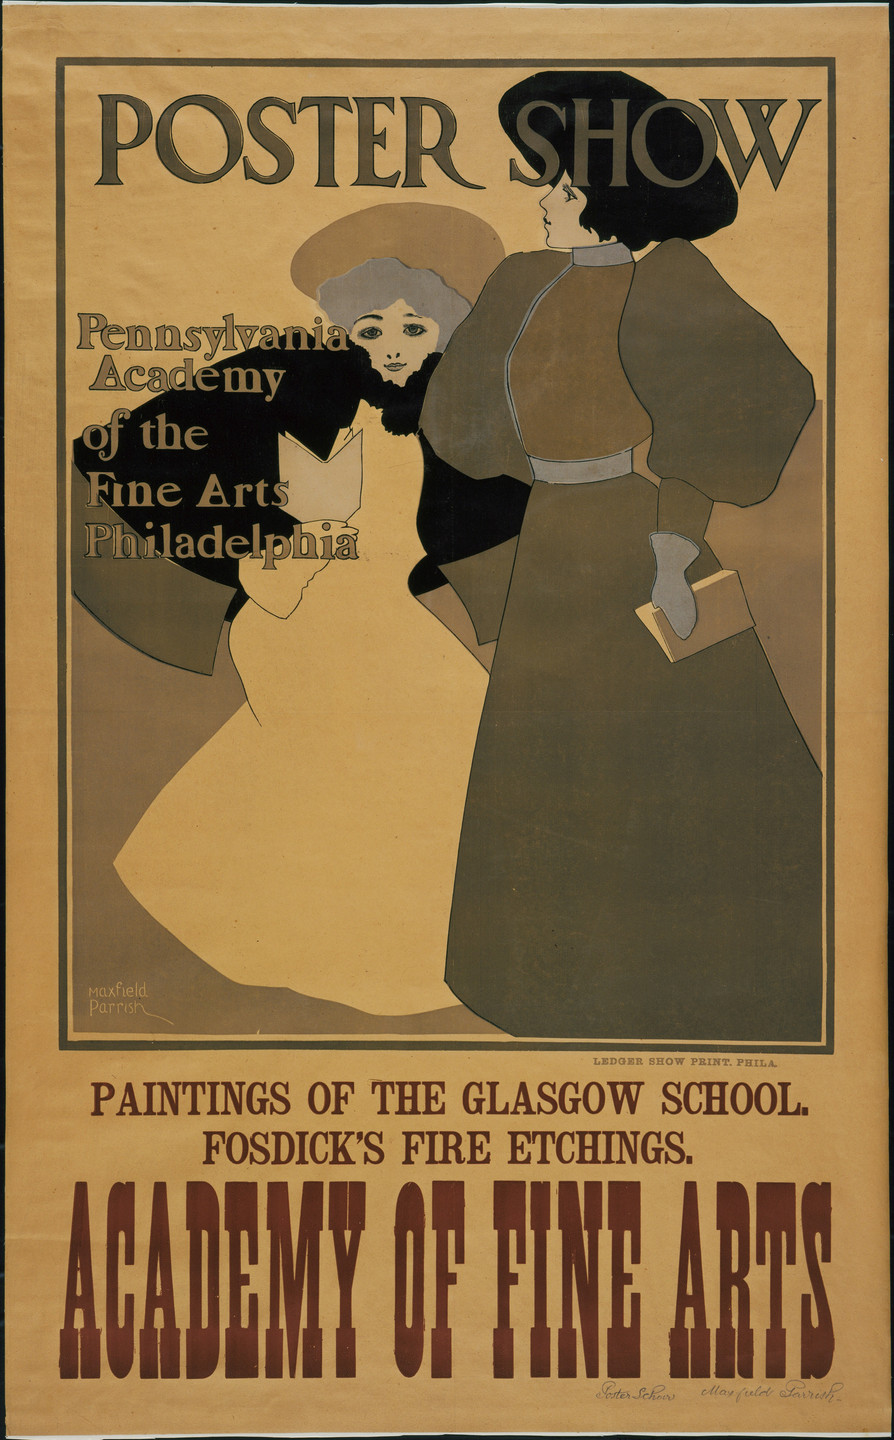 Maxfield Parrish. Poster Show, Pennsylvania Academy of the Fine Arts Philadelphia. 1896